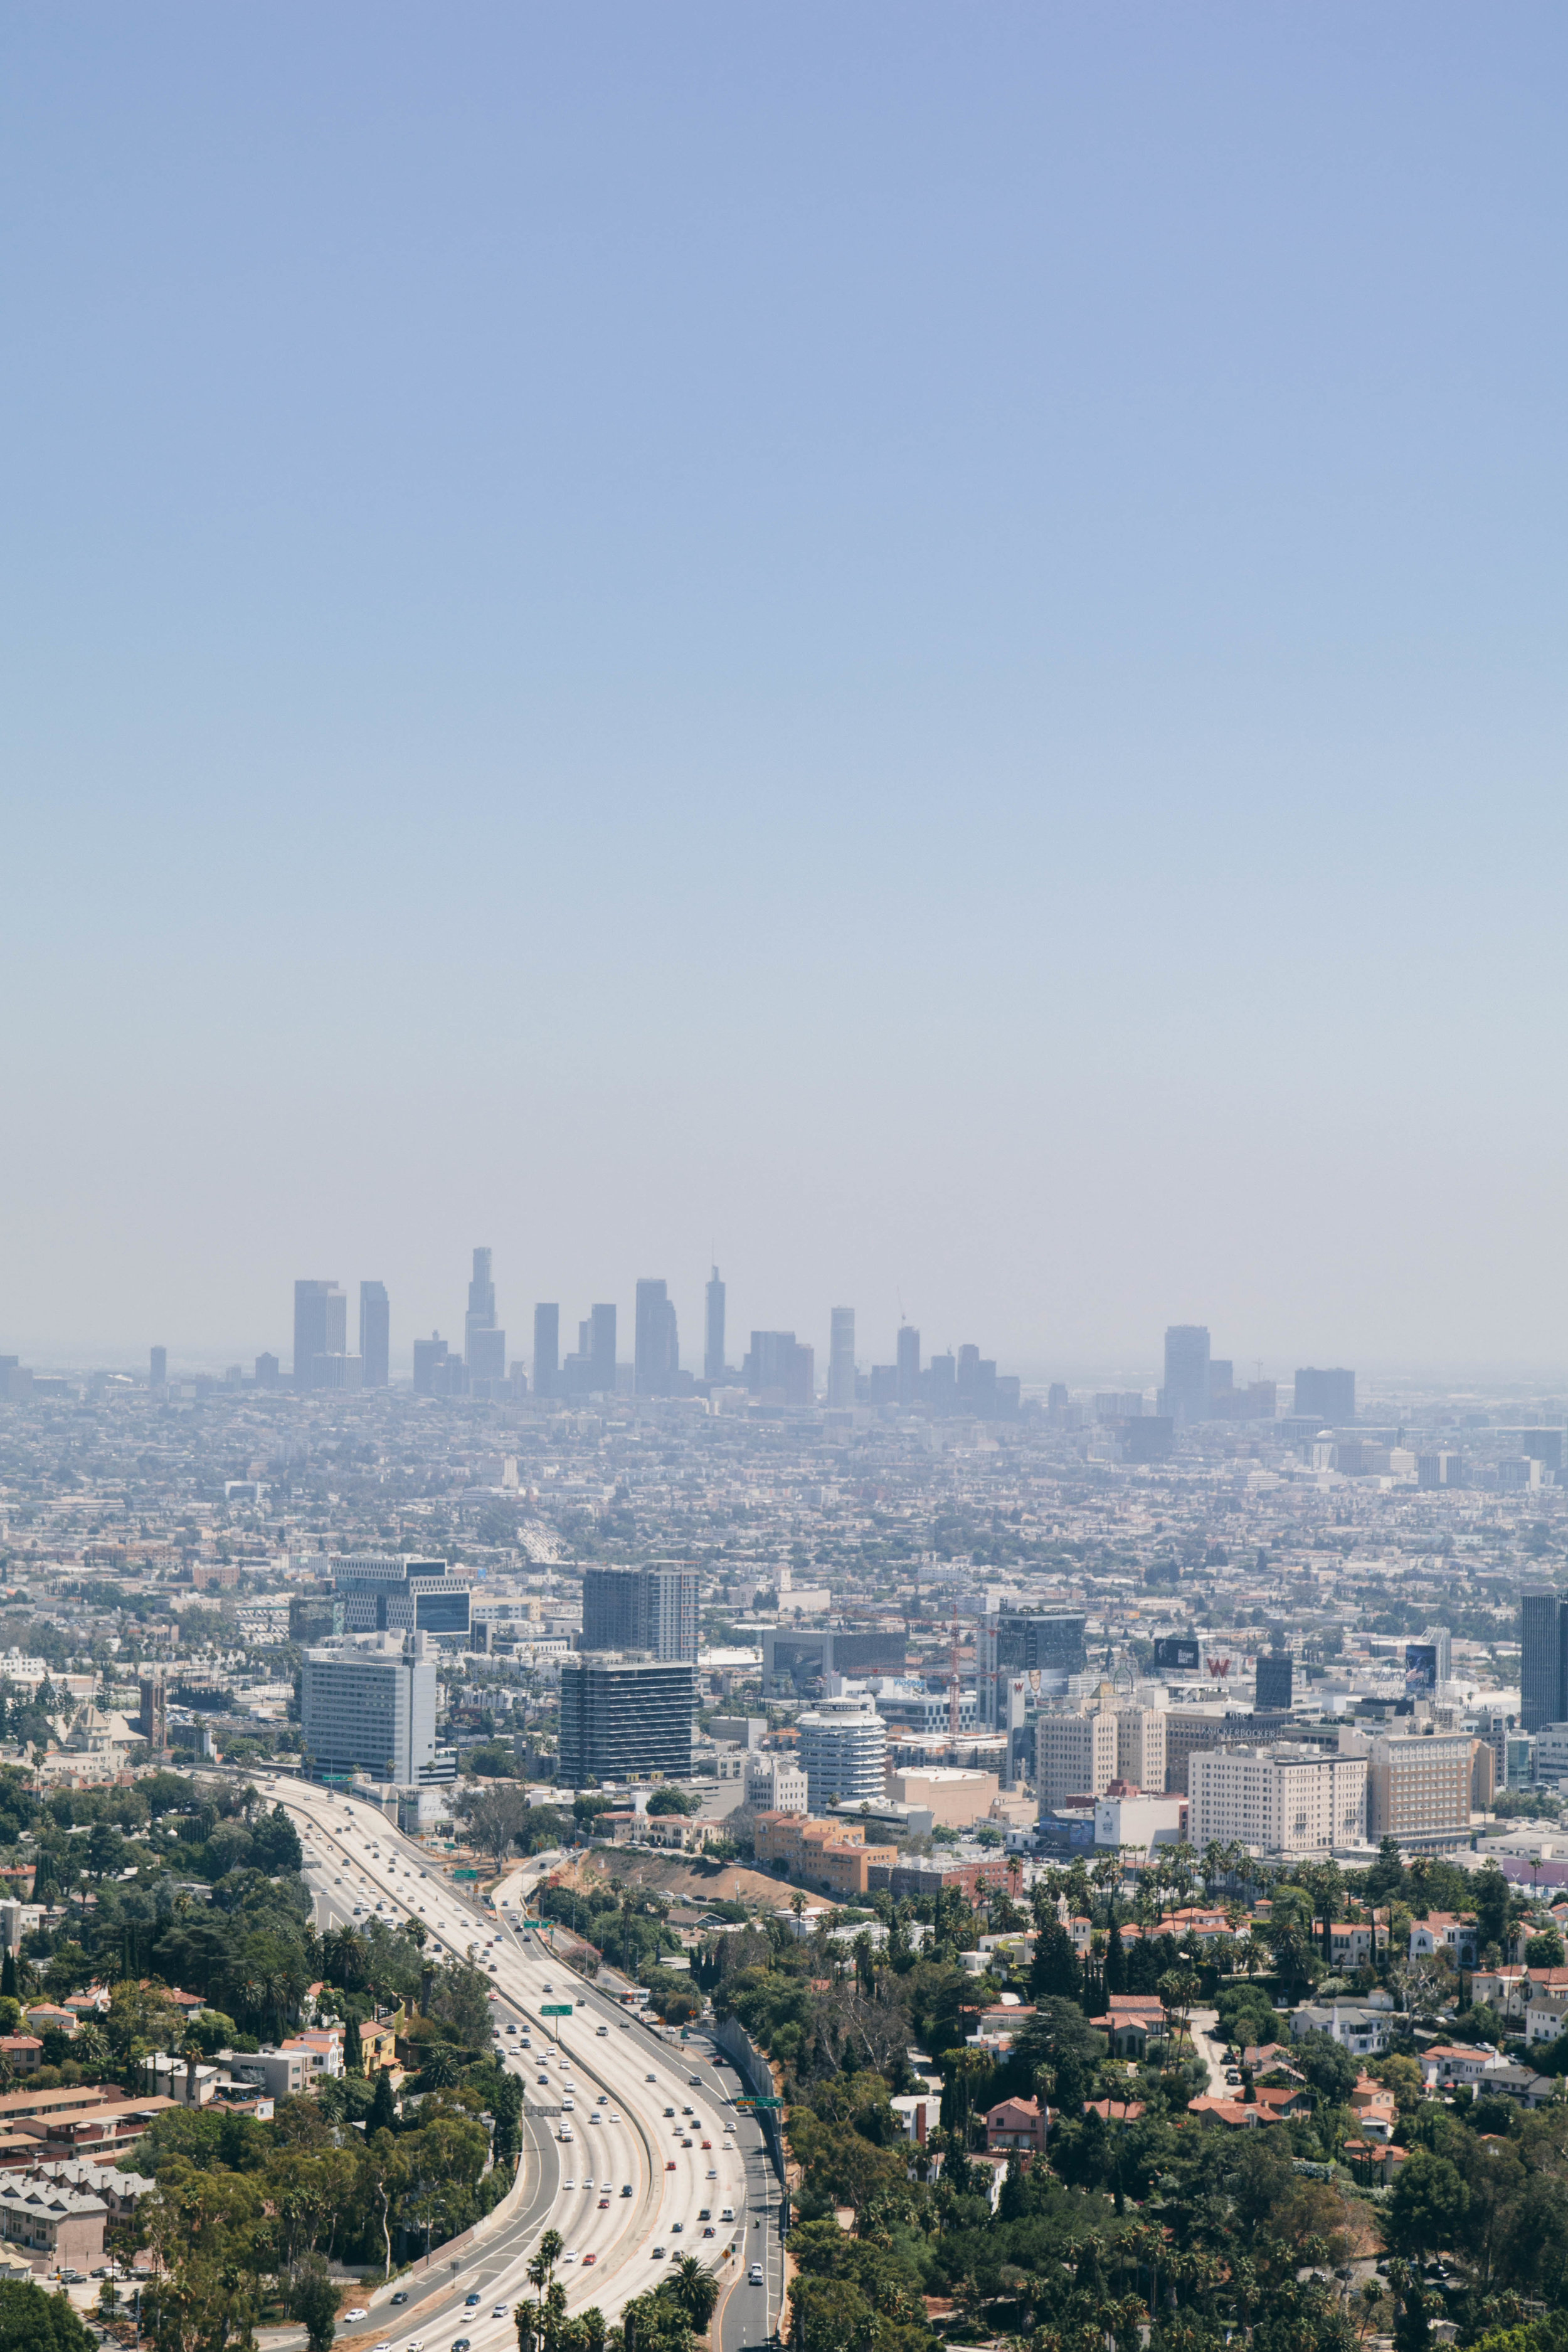 Quintessential LA, as seen from Mulholland Drive.